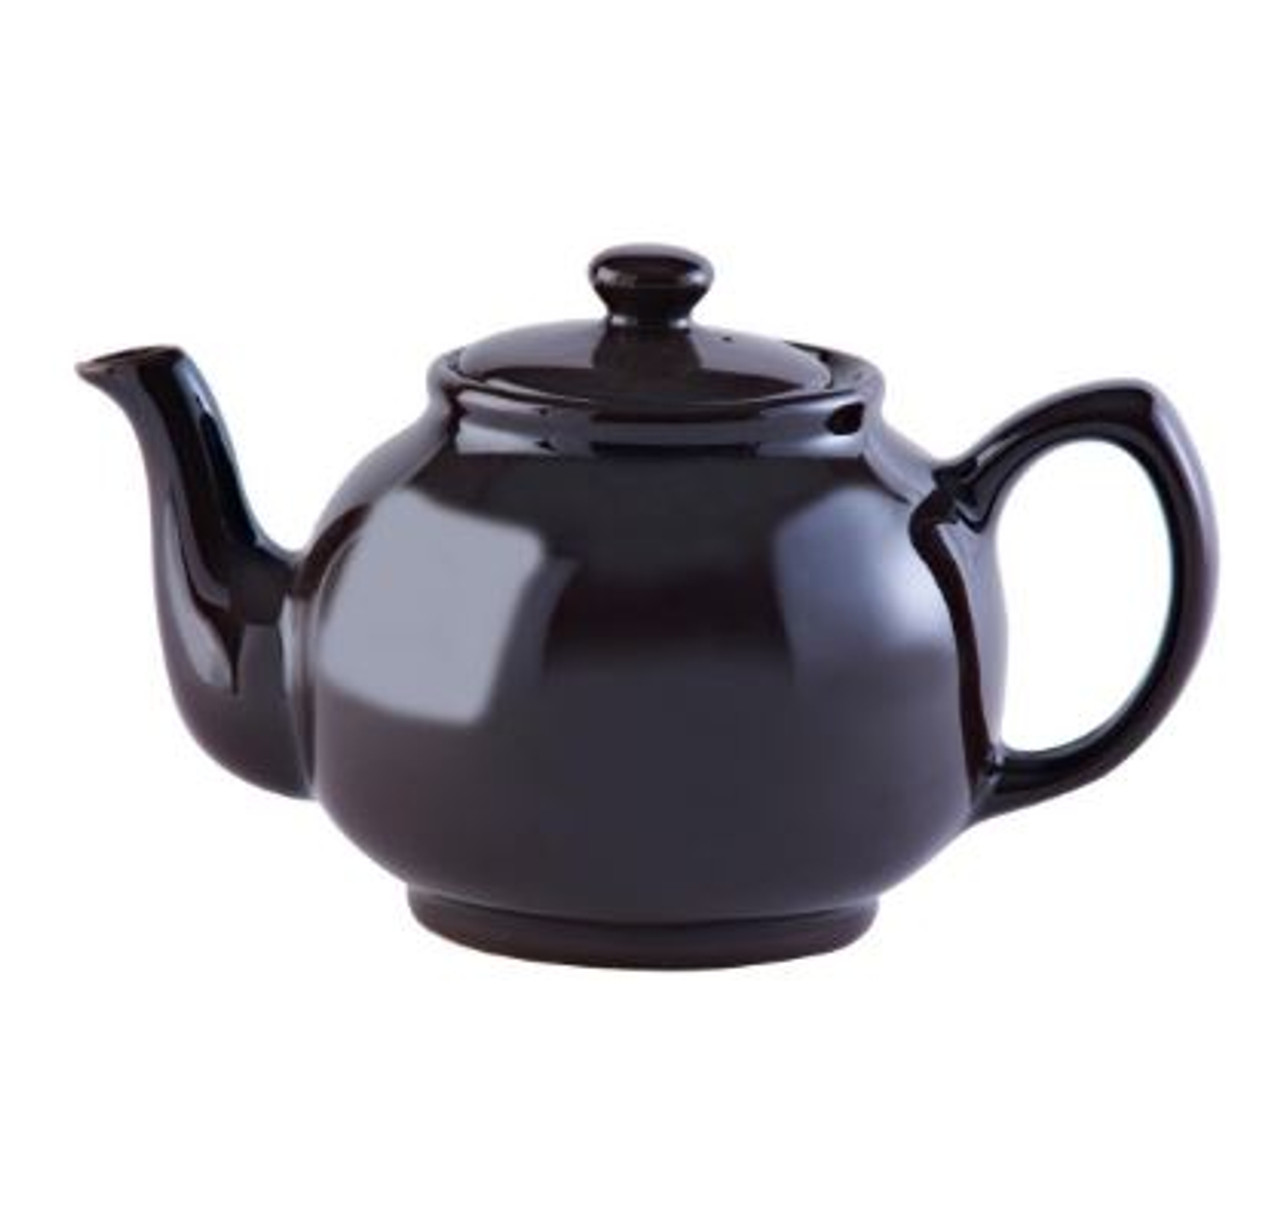 BRIGHTS TEA POT - ROCKINGHAM - 10 CUP